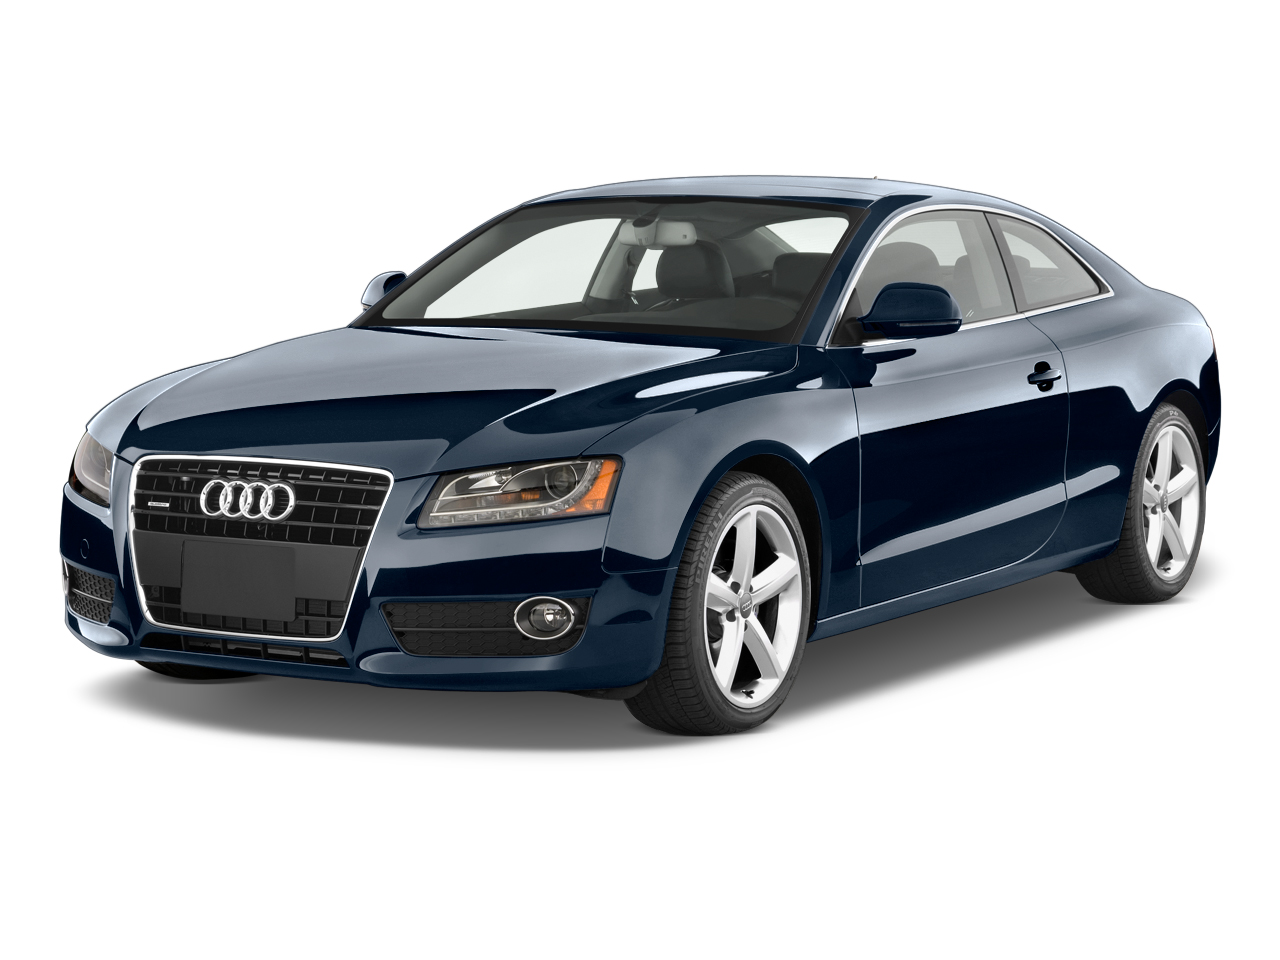 2010 Audi A5 Six For The Single Guy